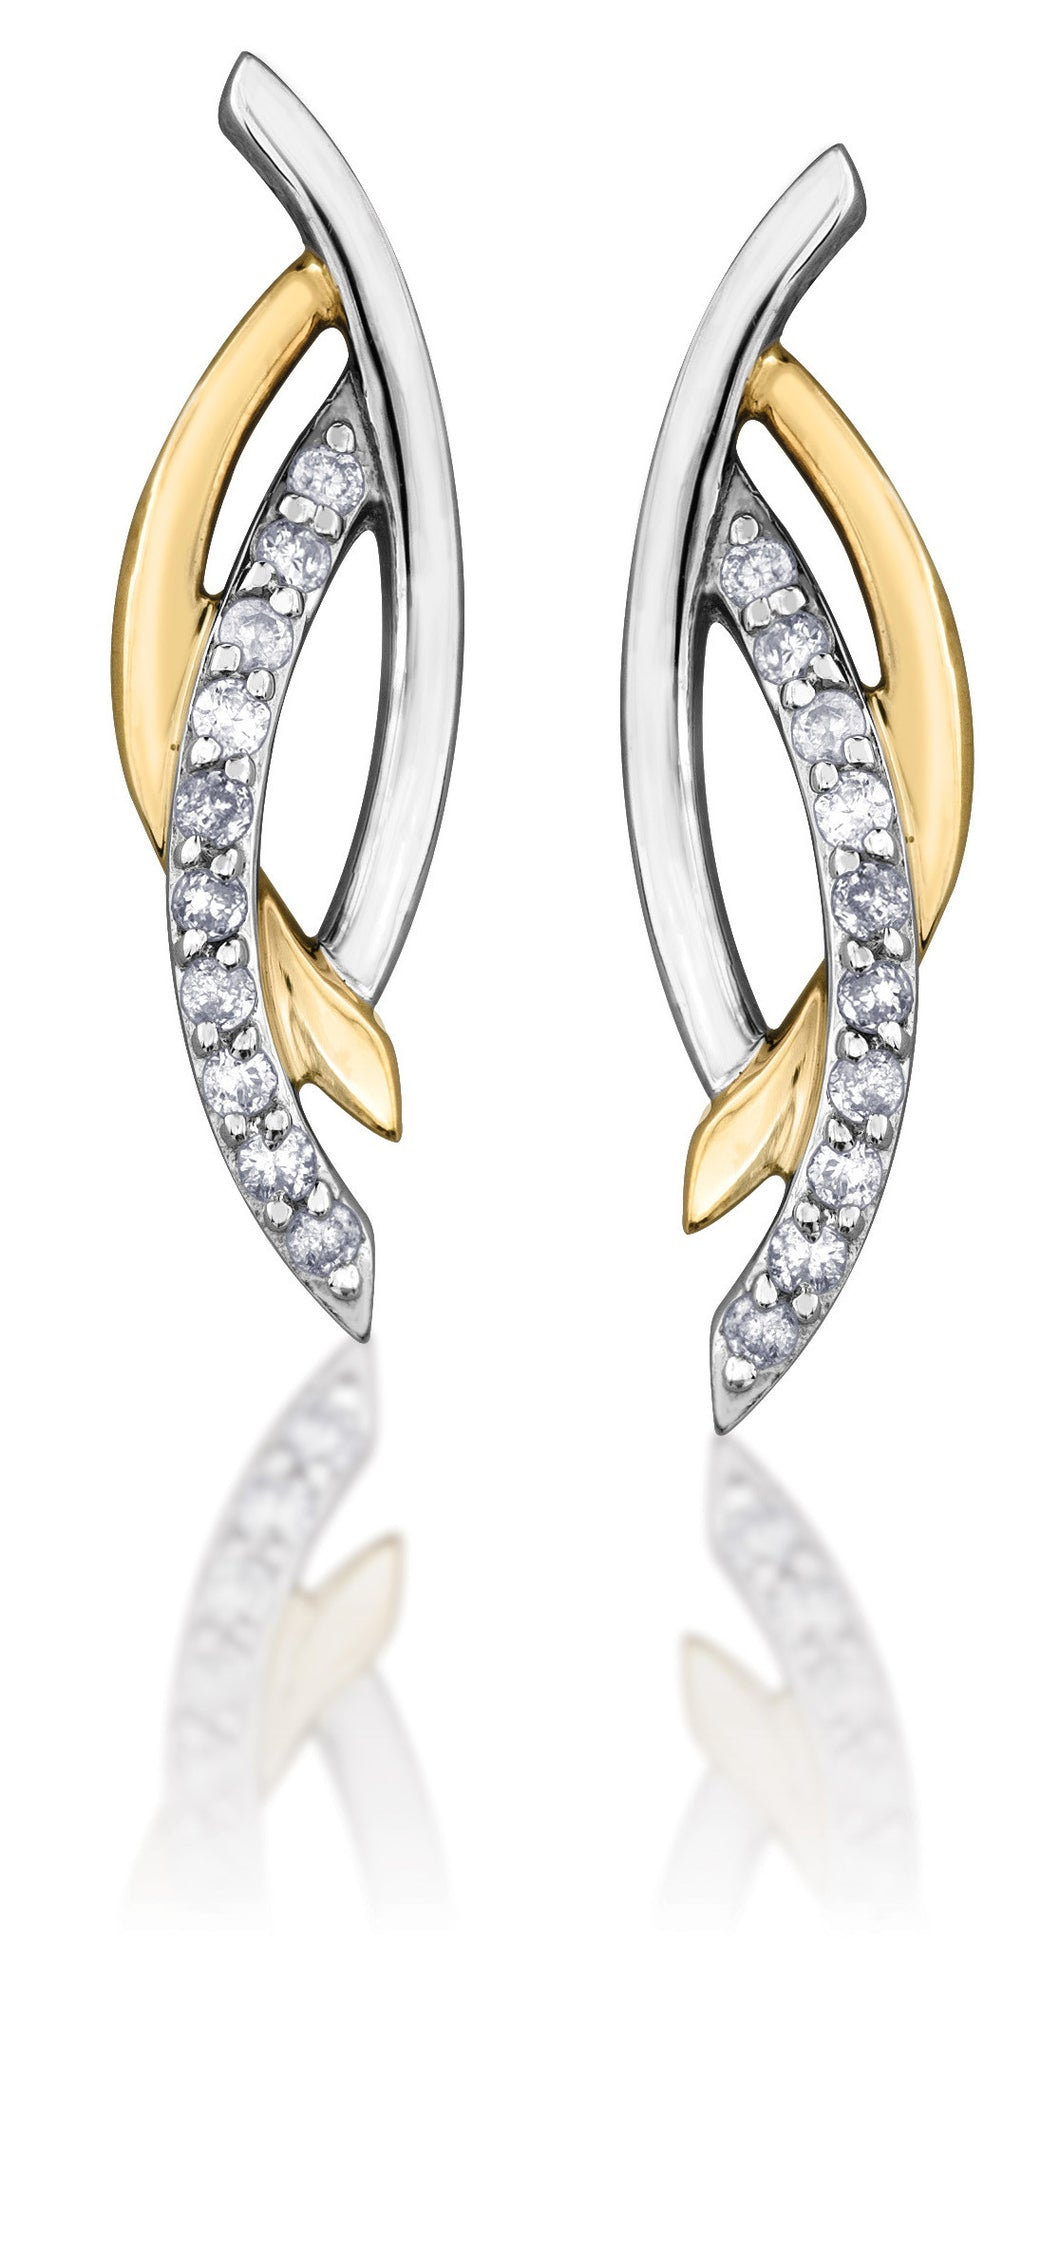 10Kt White and Yellow Diamond Earrings